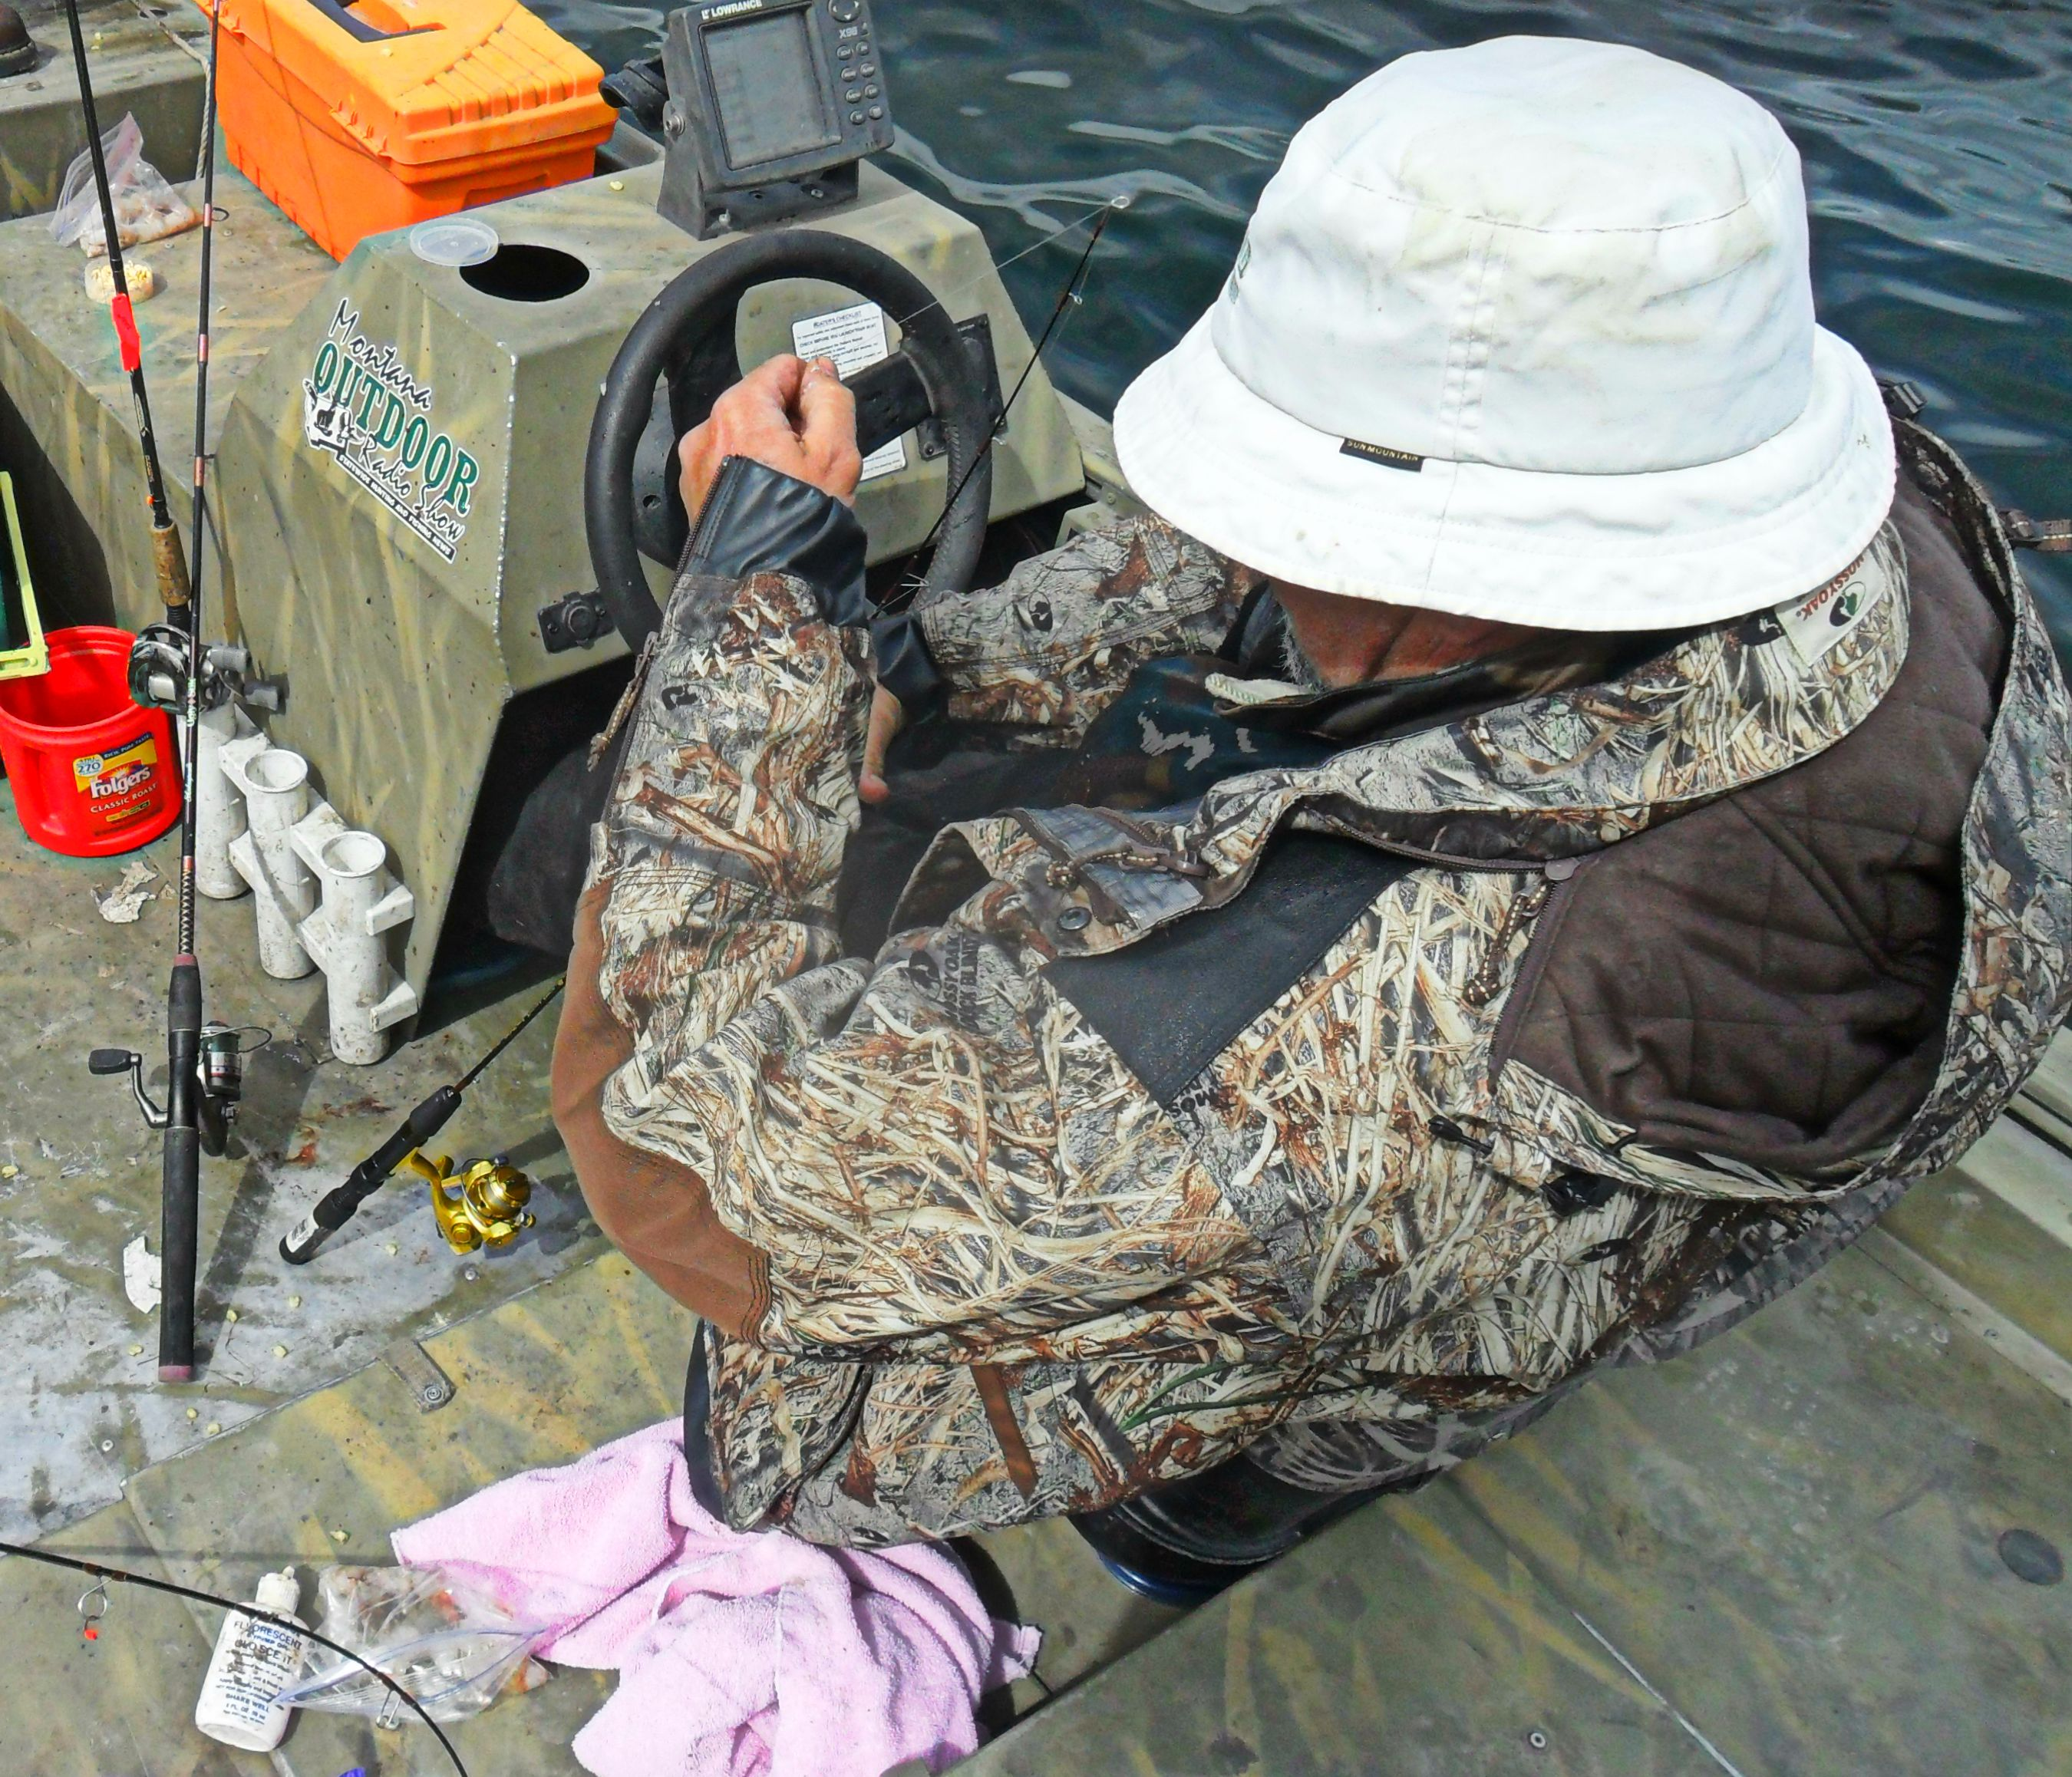 The Captain was trying to figure out what Jason was doing to catch those salmon!